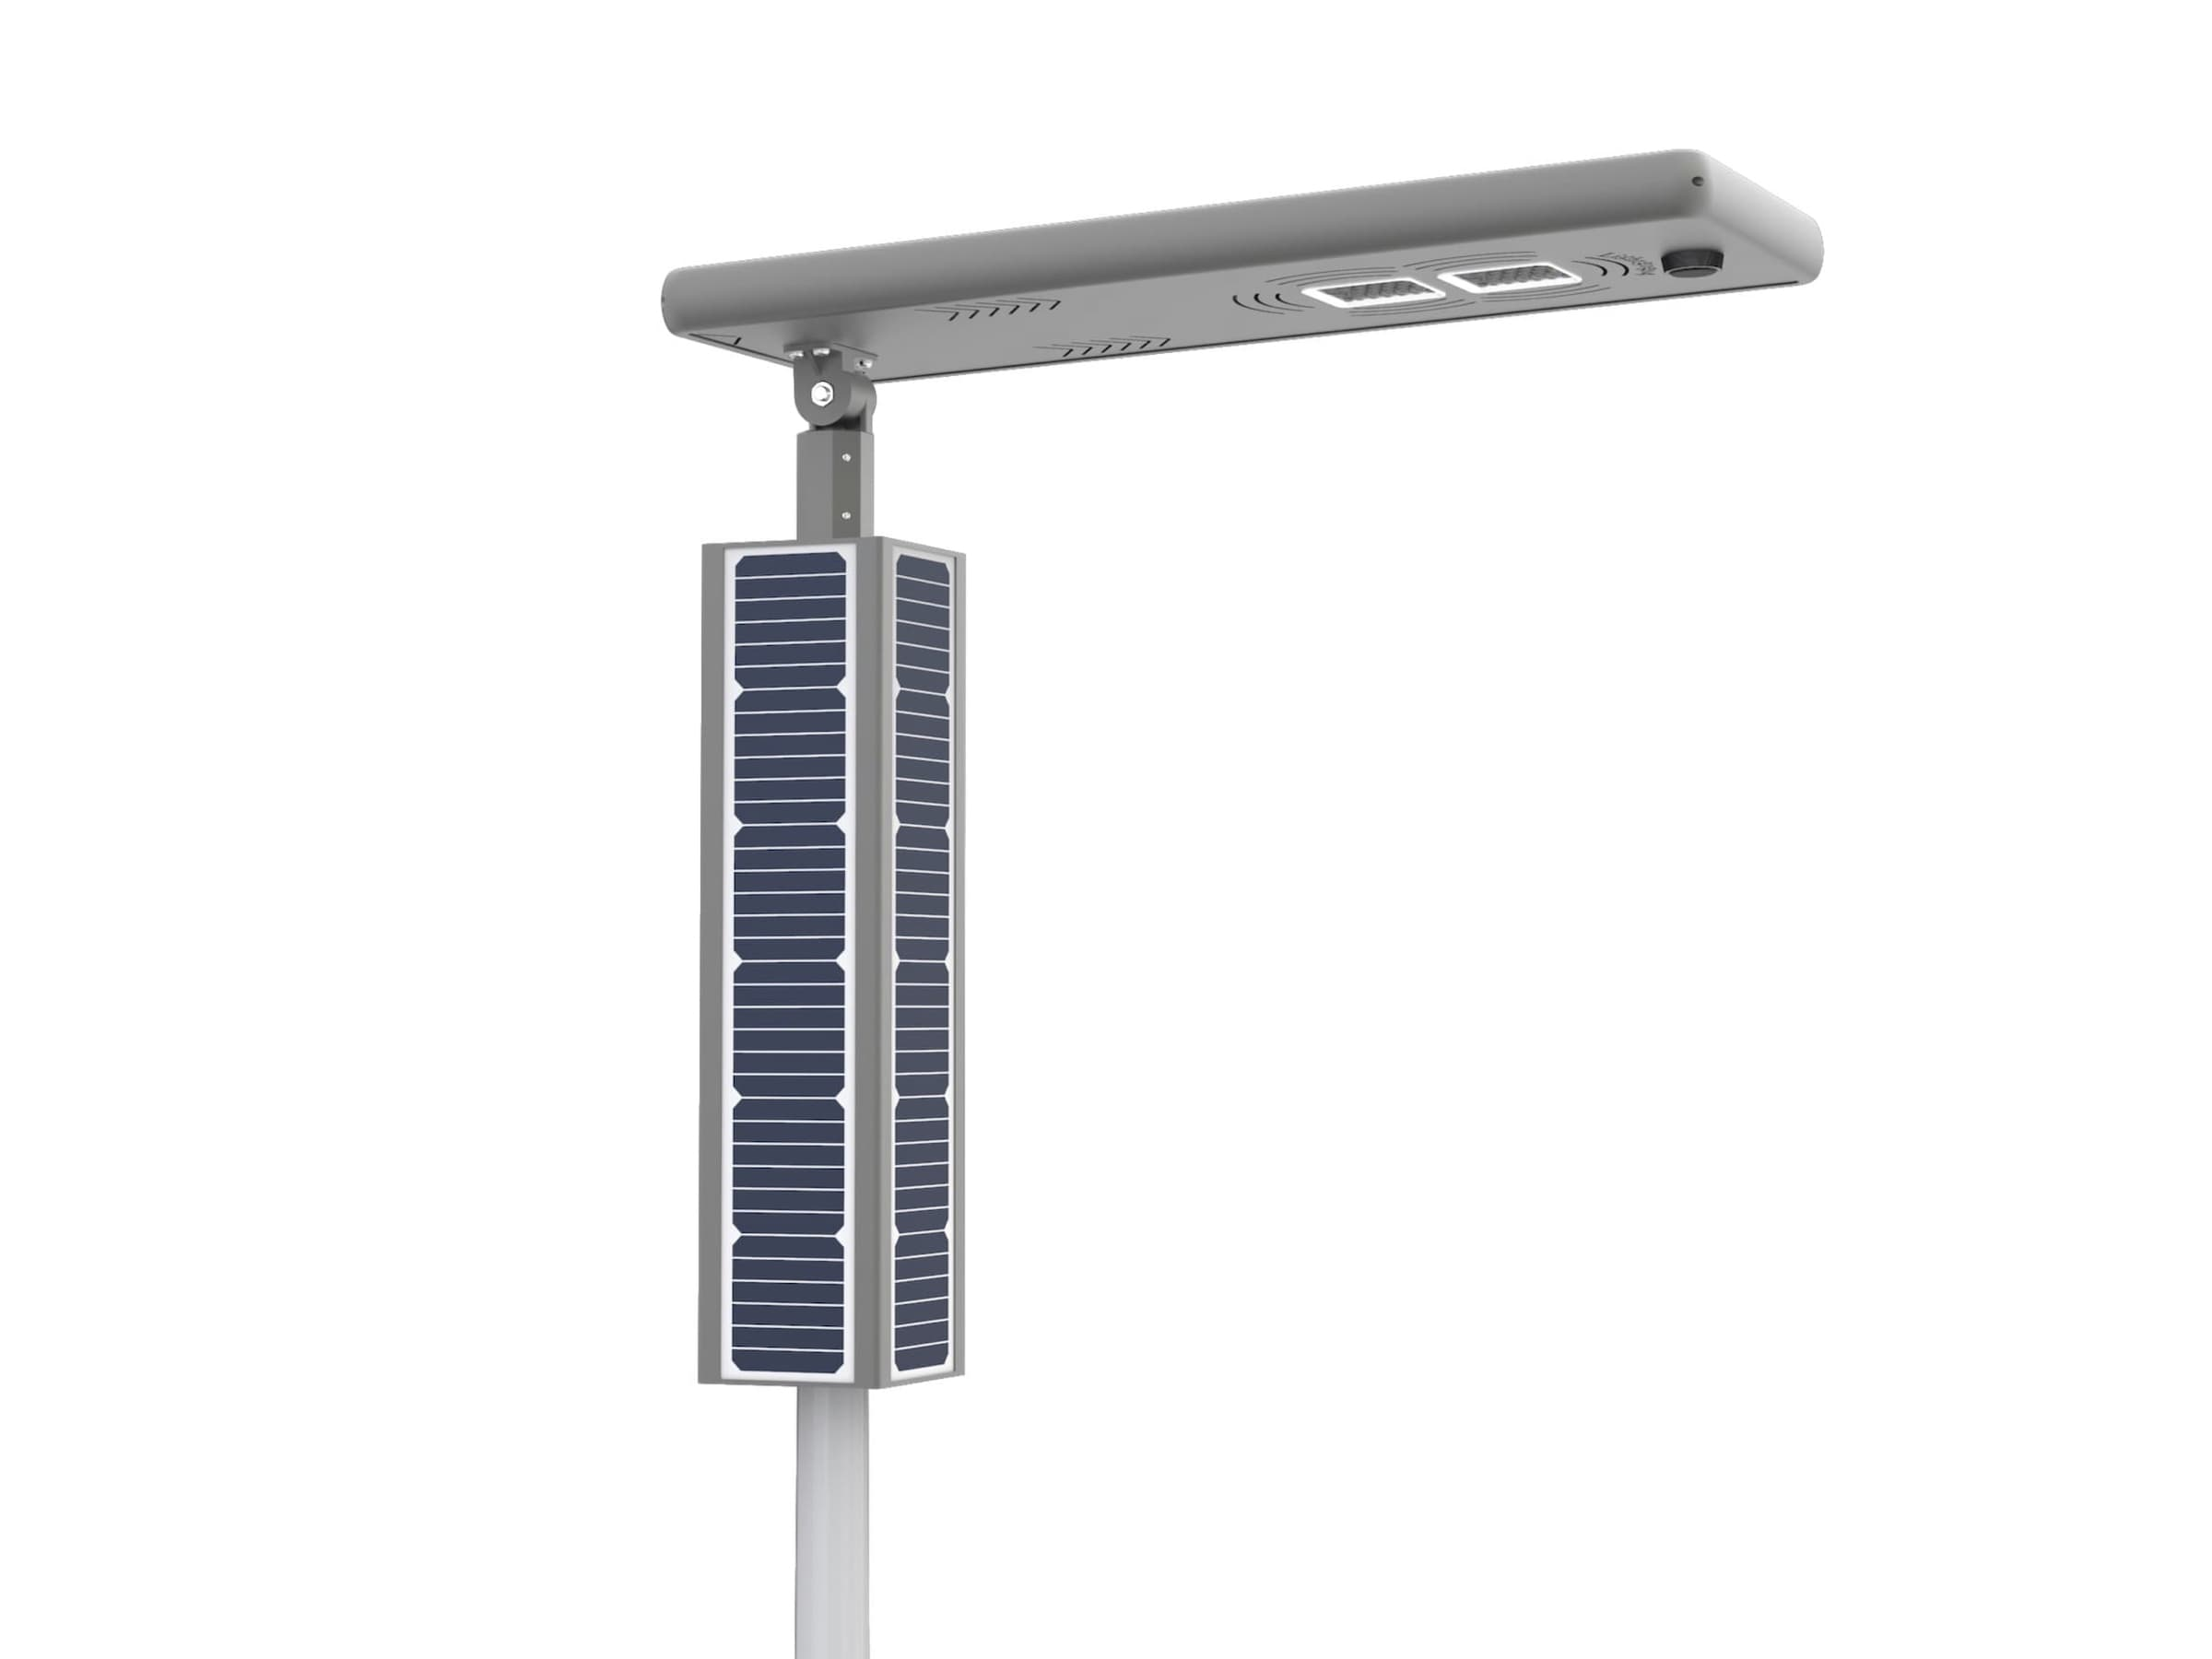 The Lightgogo 4 Plus is an upgraded version of the integrated solar street light, designed to meet the high power and brightness requirements of wide roads and motorways. With a maximum power of 120 watts, a maximum luminous efficacy of 180 lumens per watt